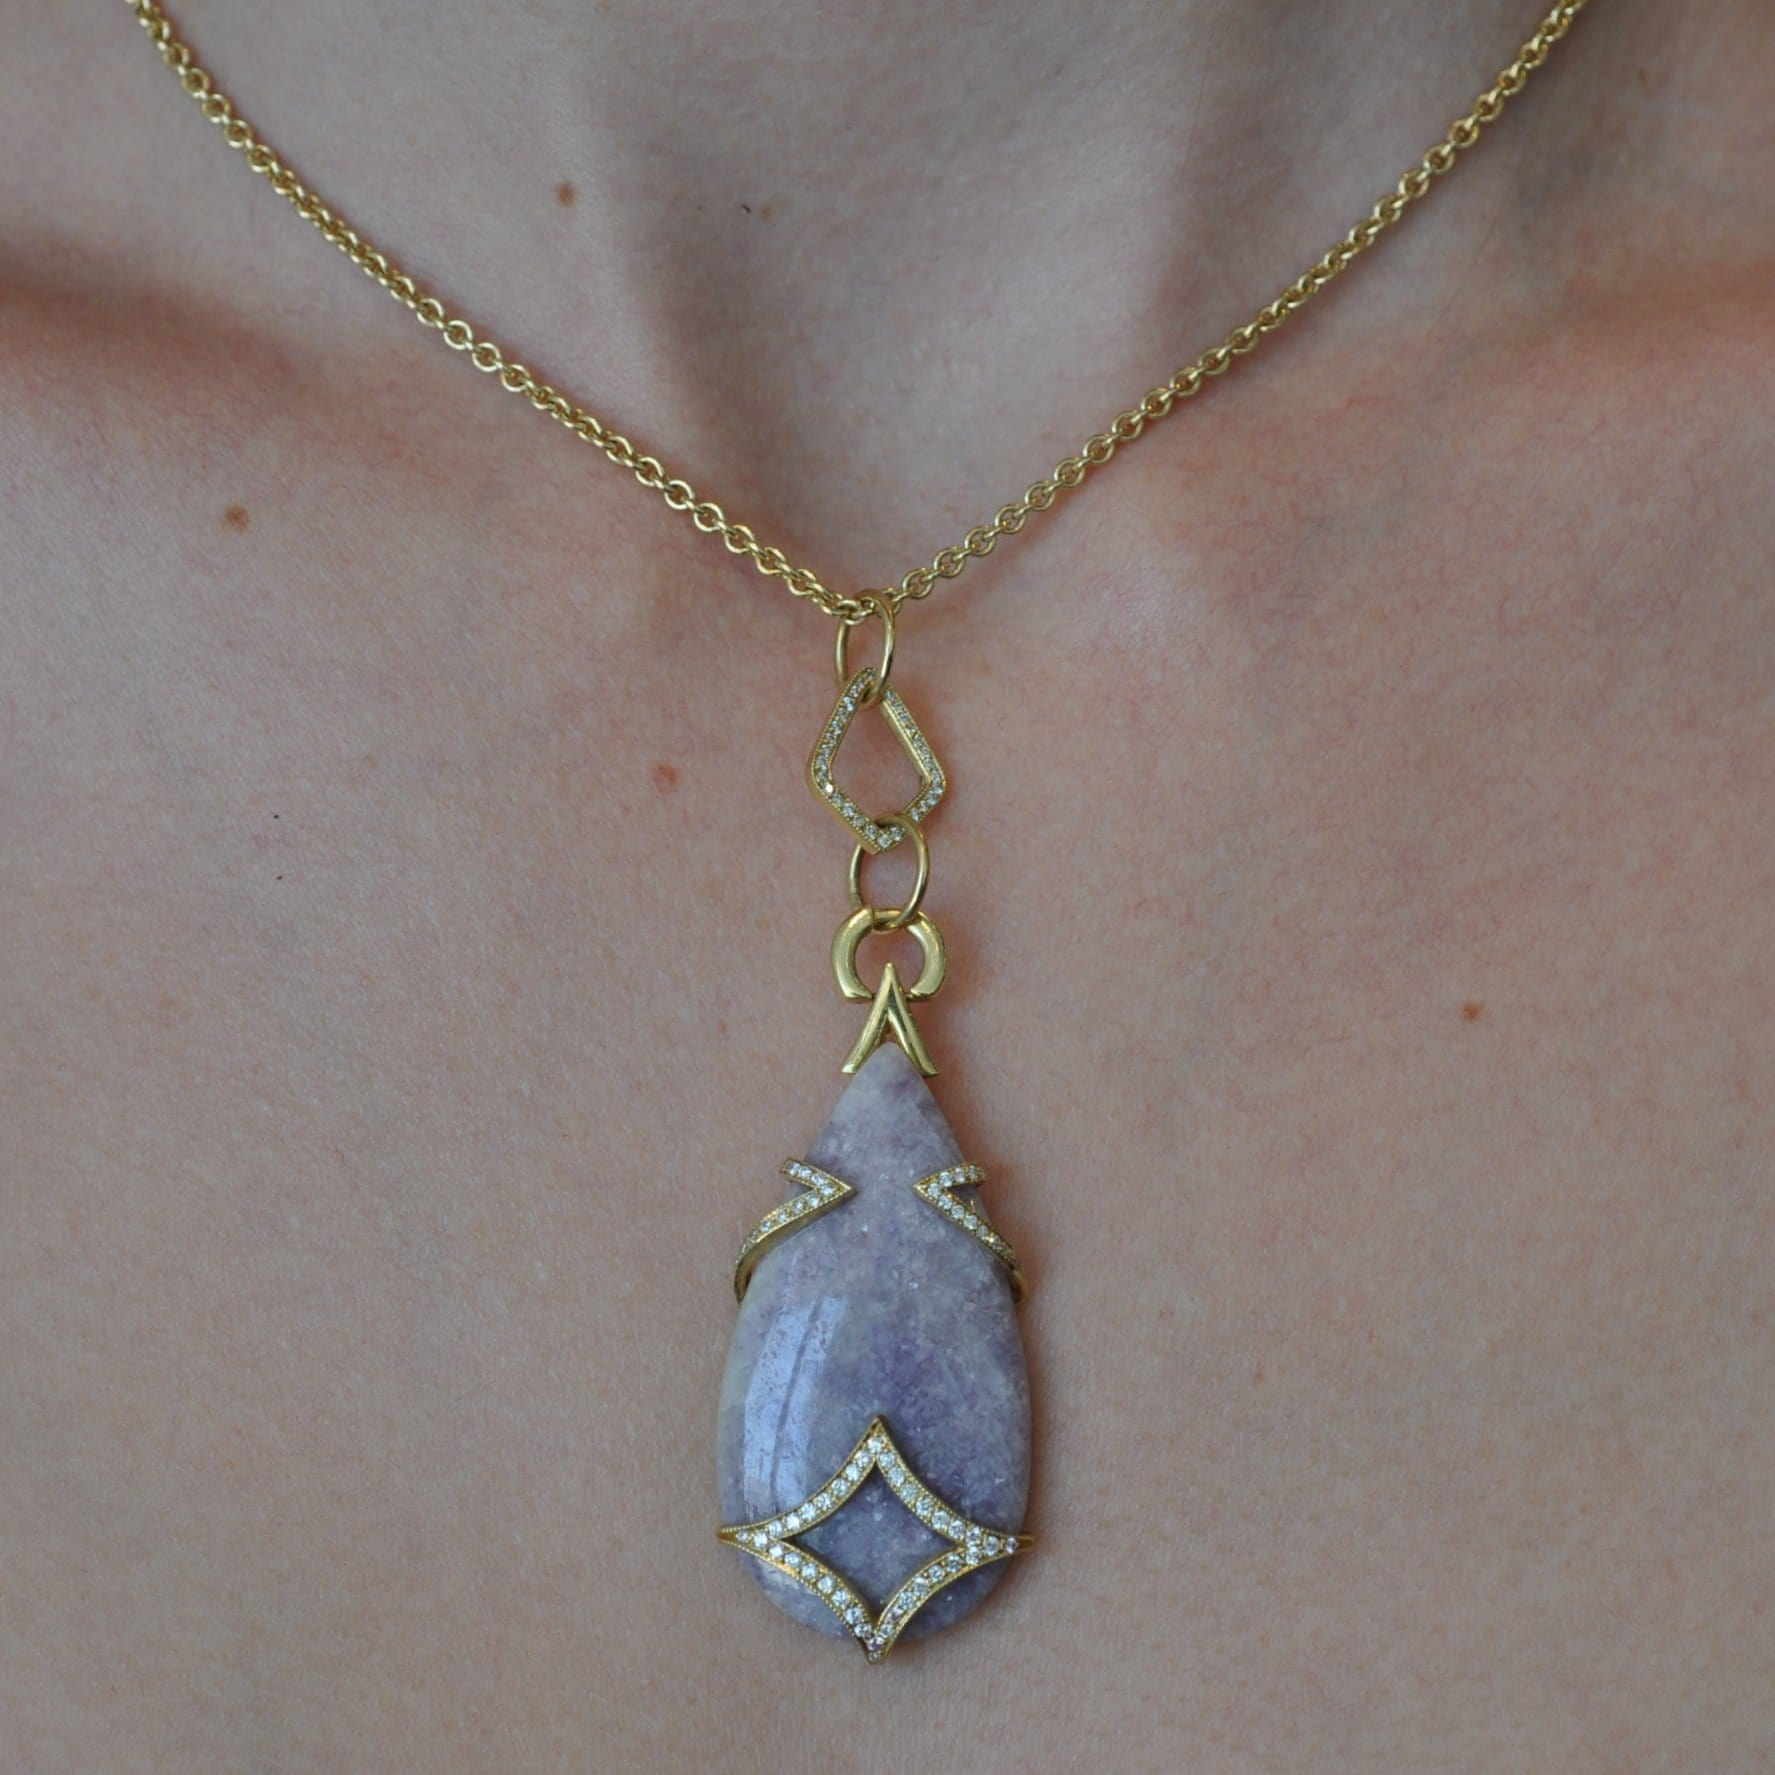 Lavender Lepidolite Diamond Drop Pendant Necklace - Curated Los Angeles